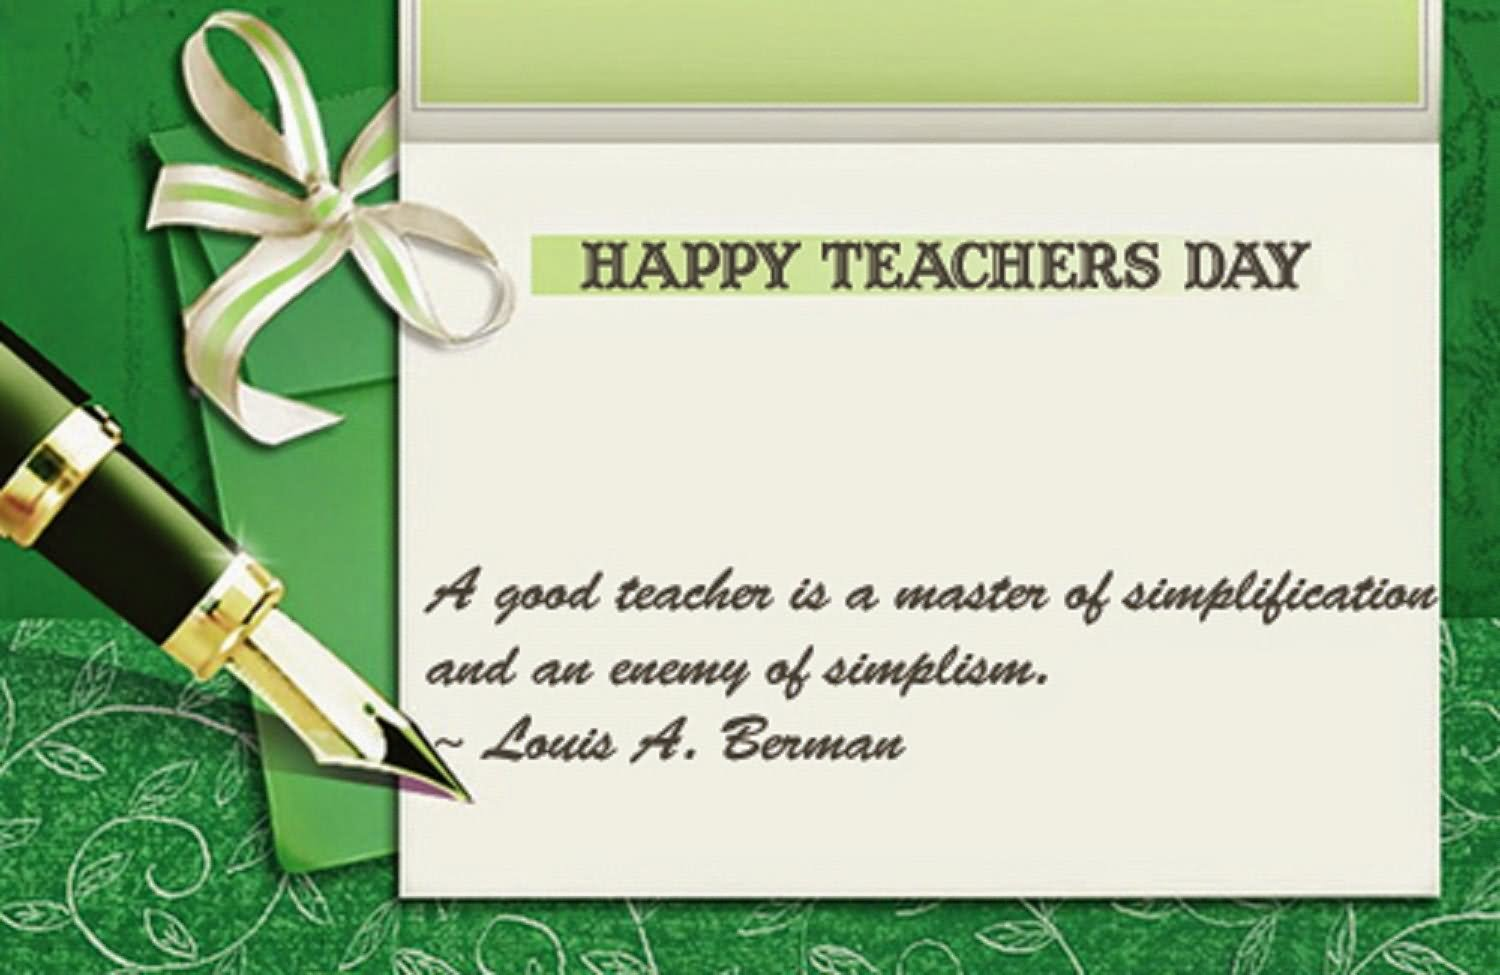 Teachers day card message messages to write on teachers day card top 10 messages to write on teachers day card m4hsunfo